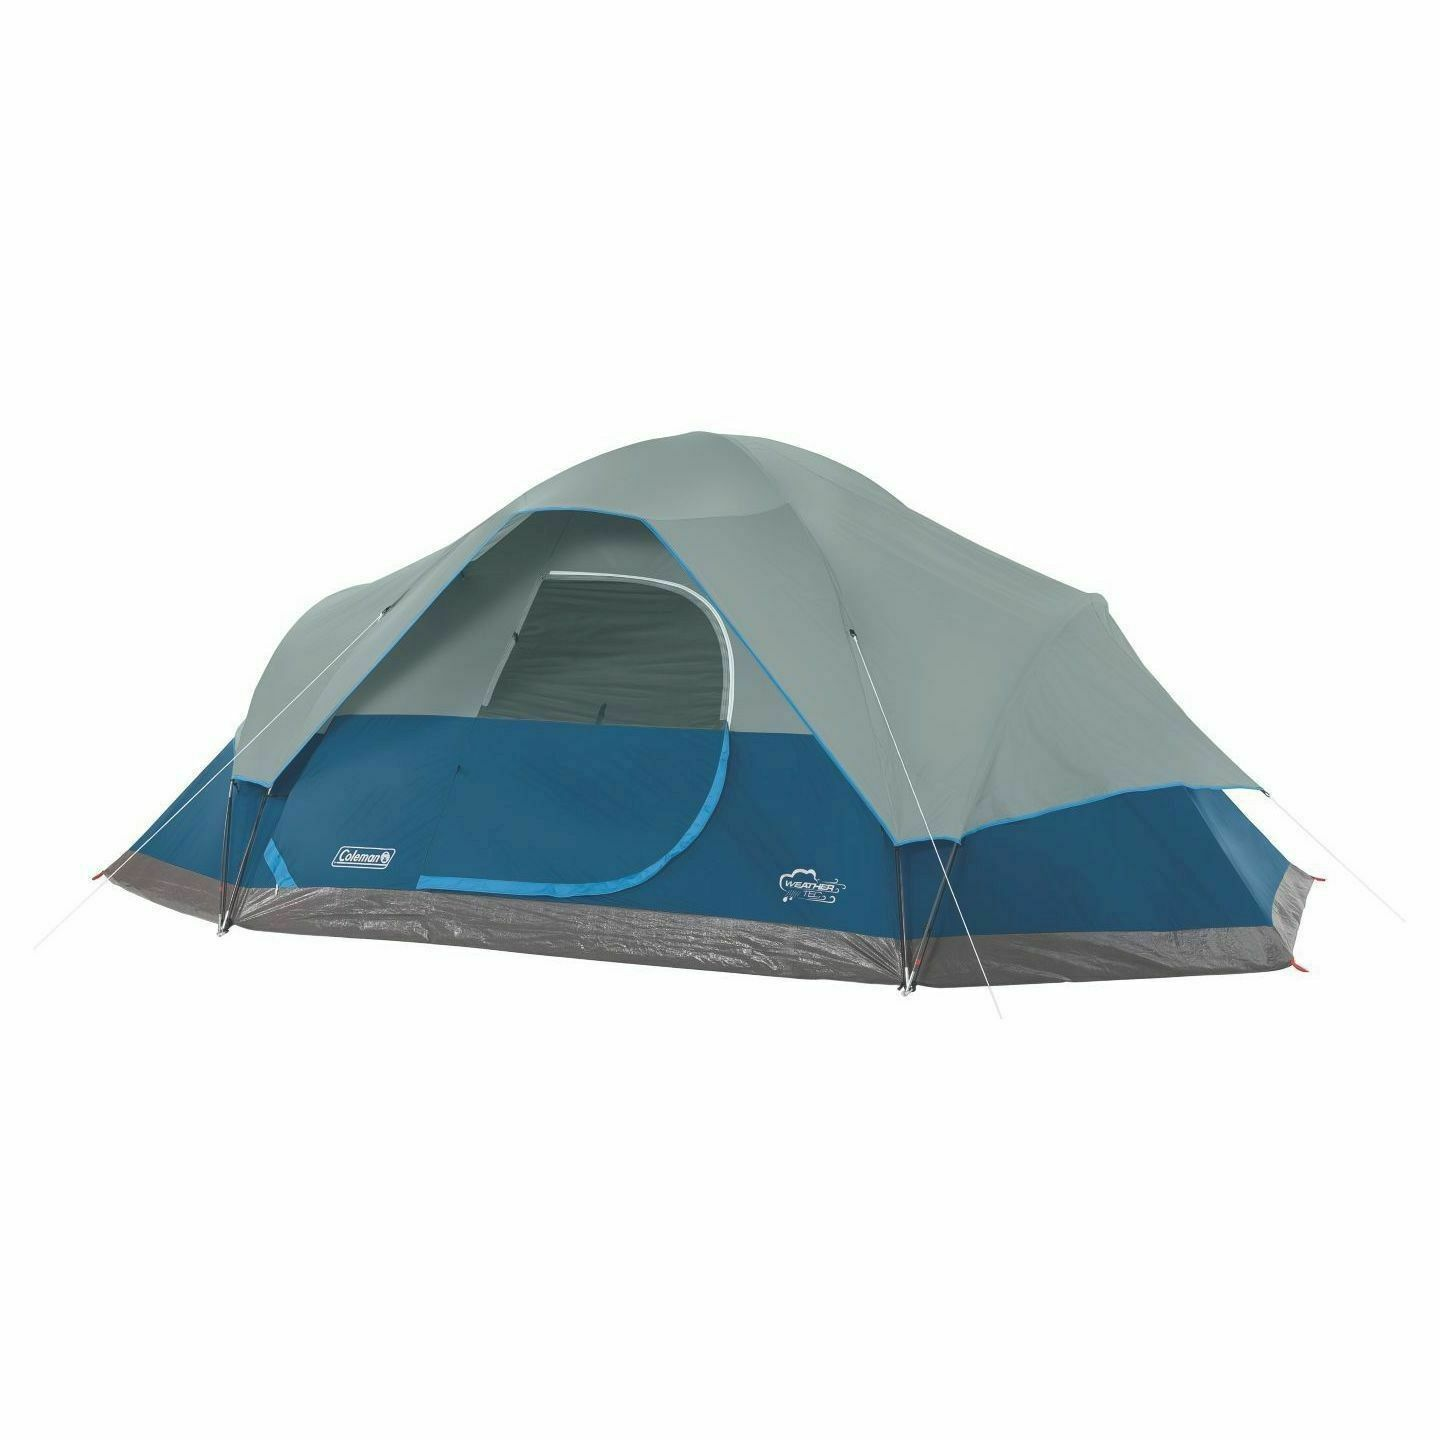 New Coleman Oasis 8-Person Dome Tent